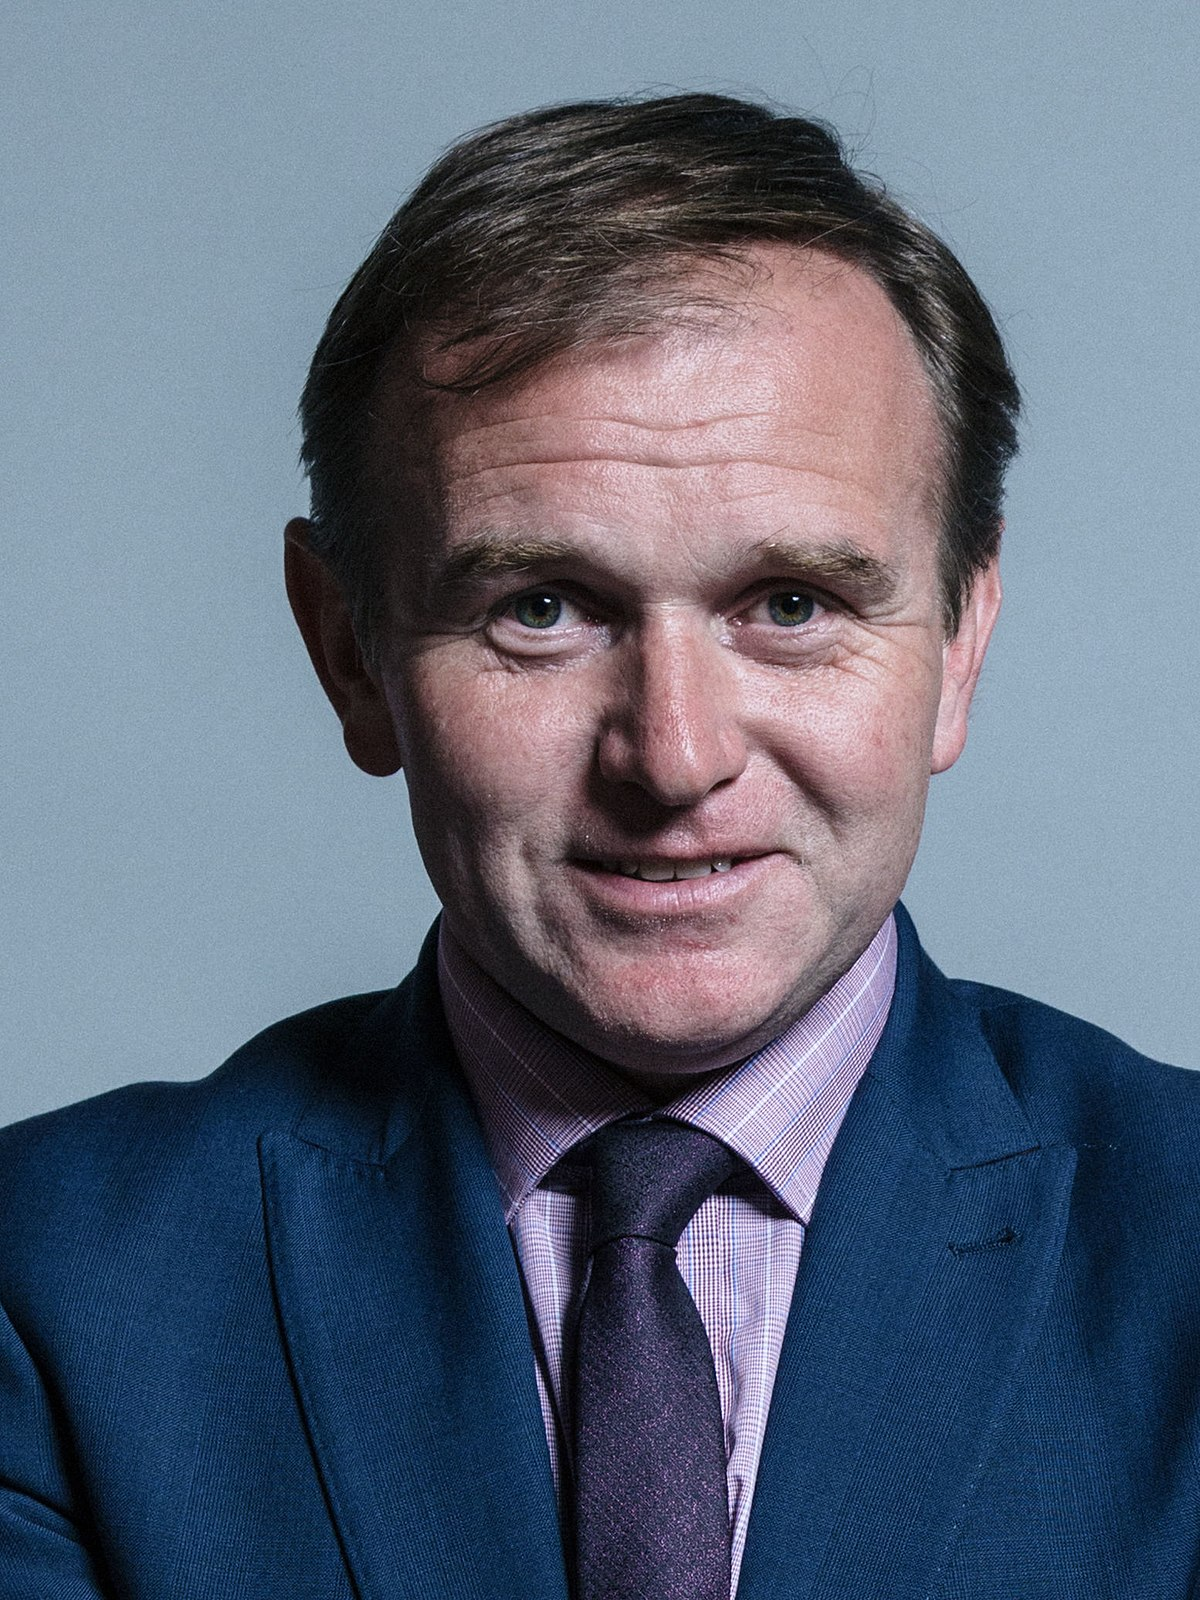 George Eustice, Minister of State for Environment, Food and Rural Affairs